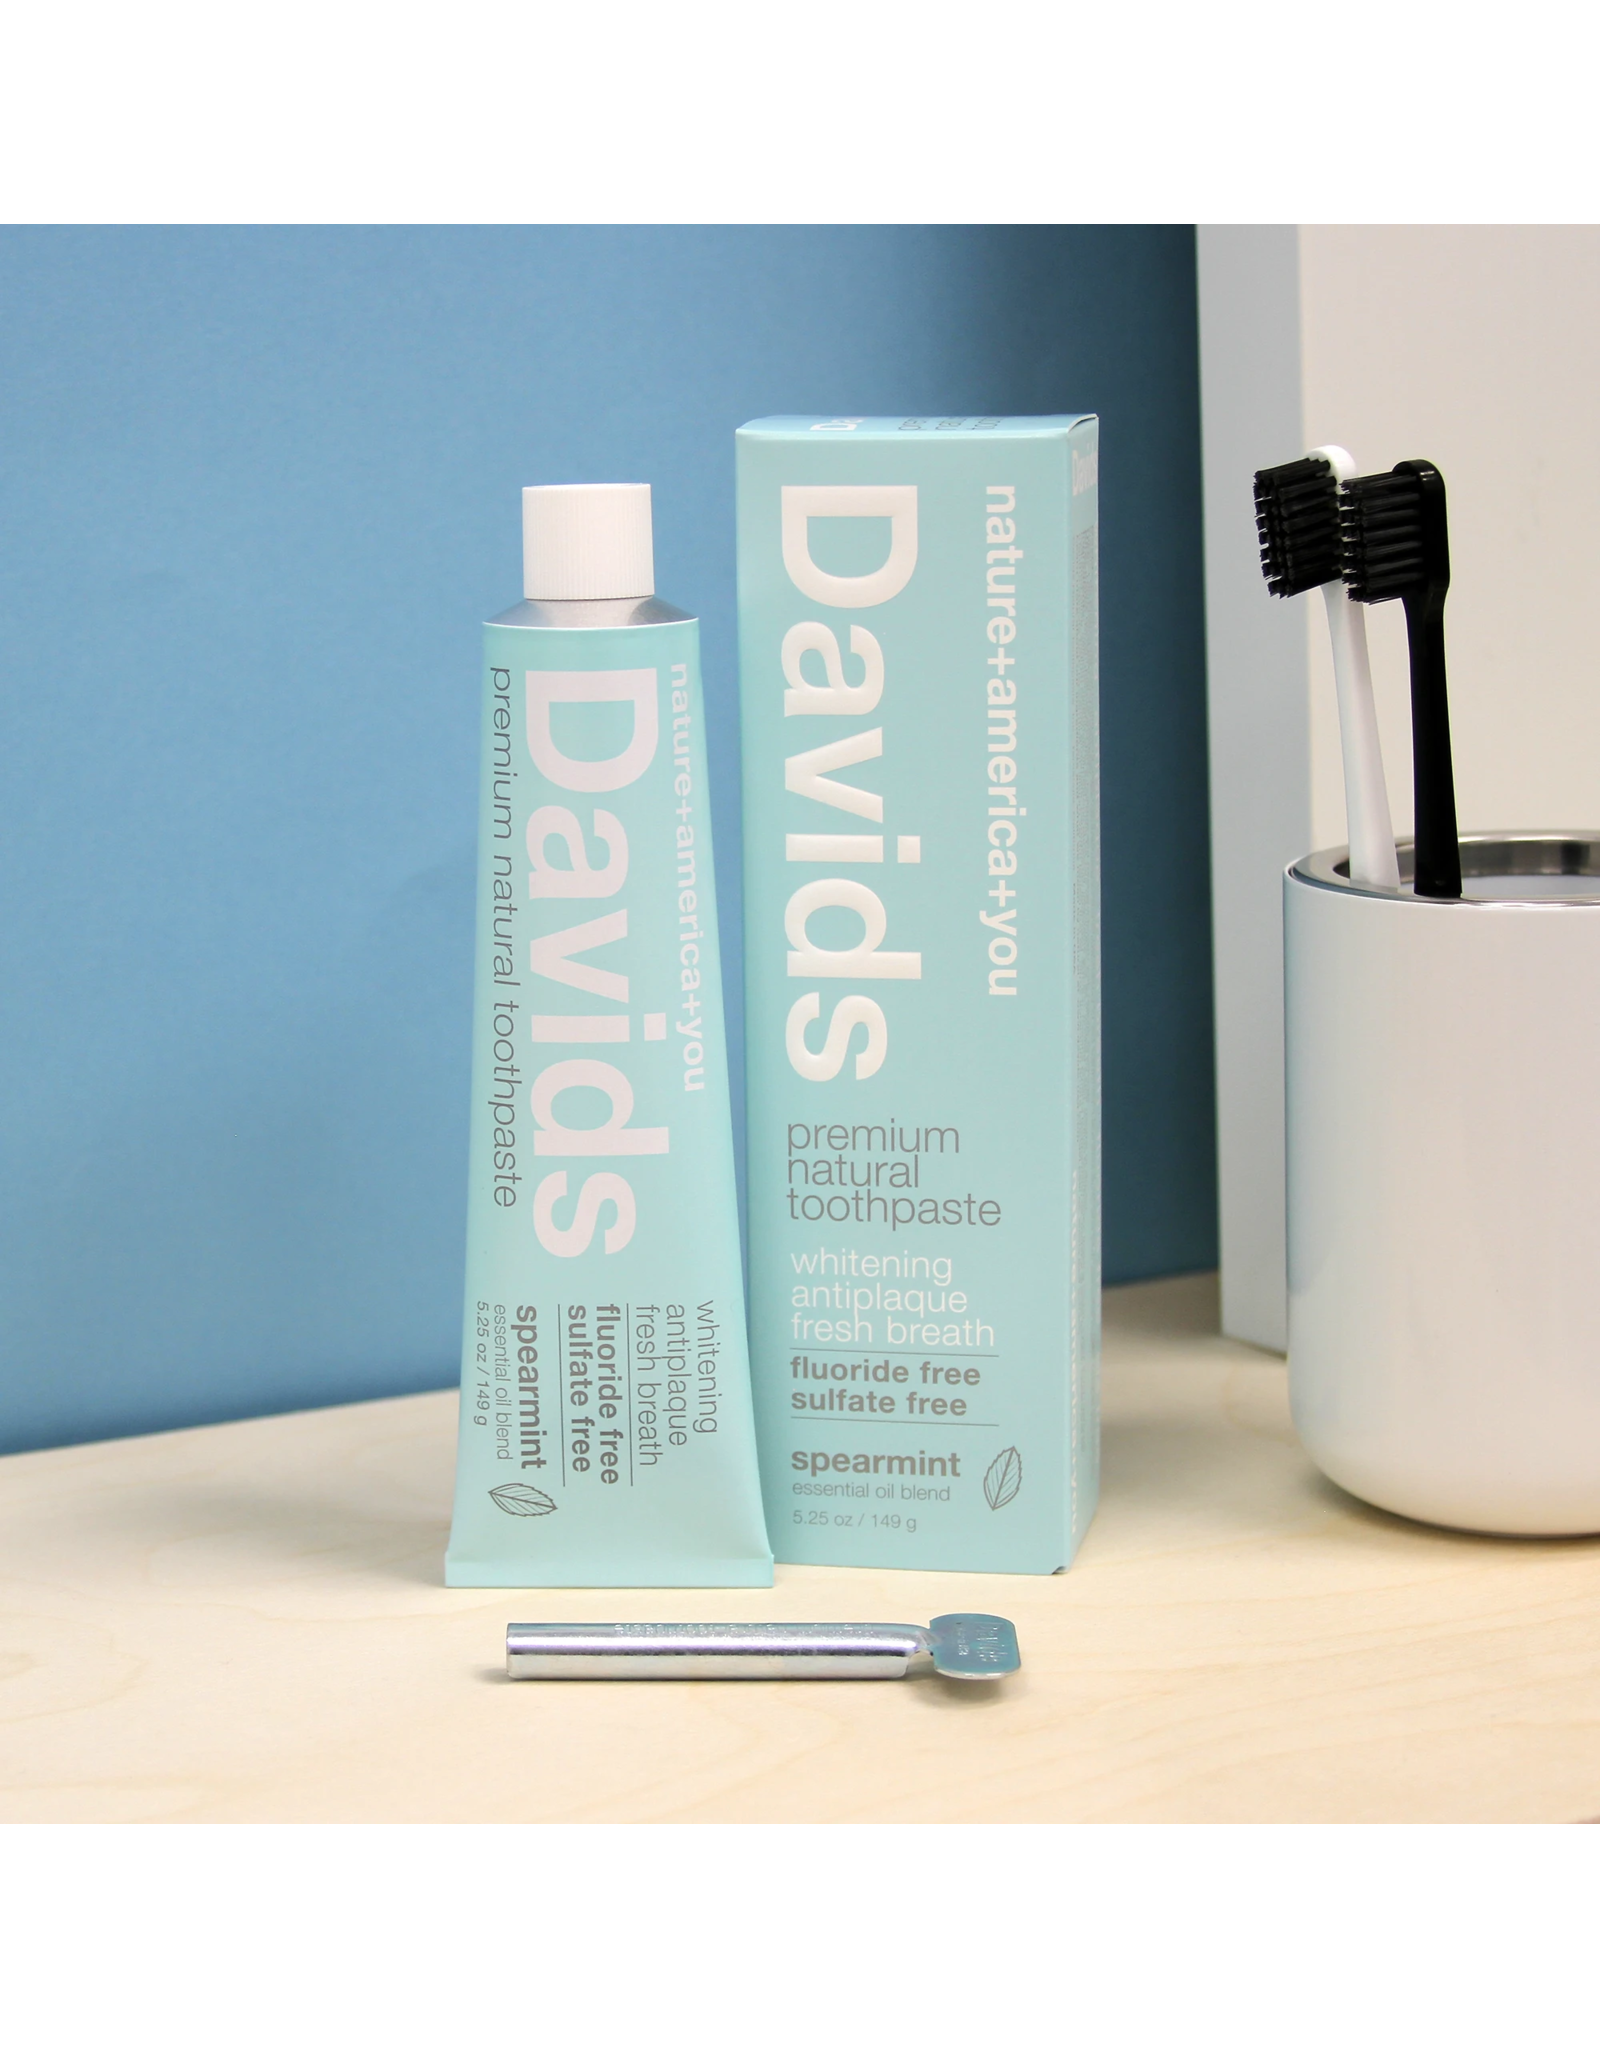 David's Davids Premium Natural Toothpaste - Spearmint